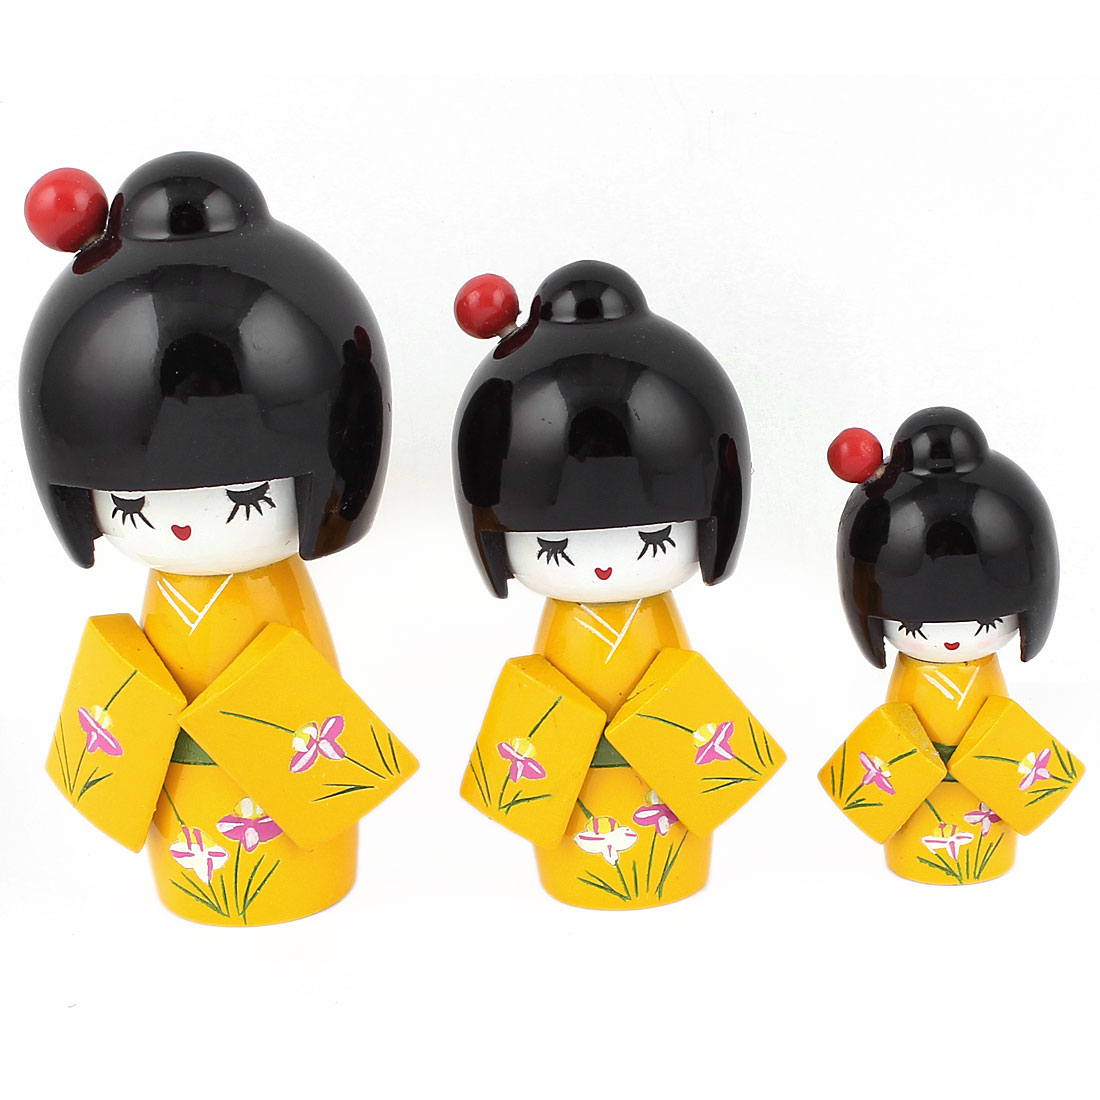 3 in 1 Handmade Floral Detail Kimono Wooden Craft Japanese Kokeshi Doll Yellow